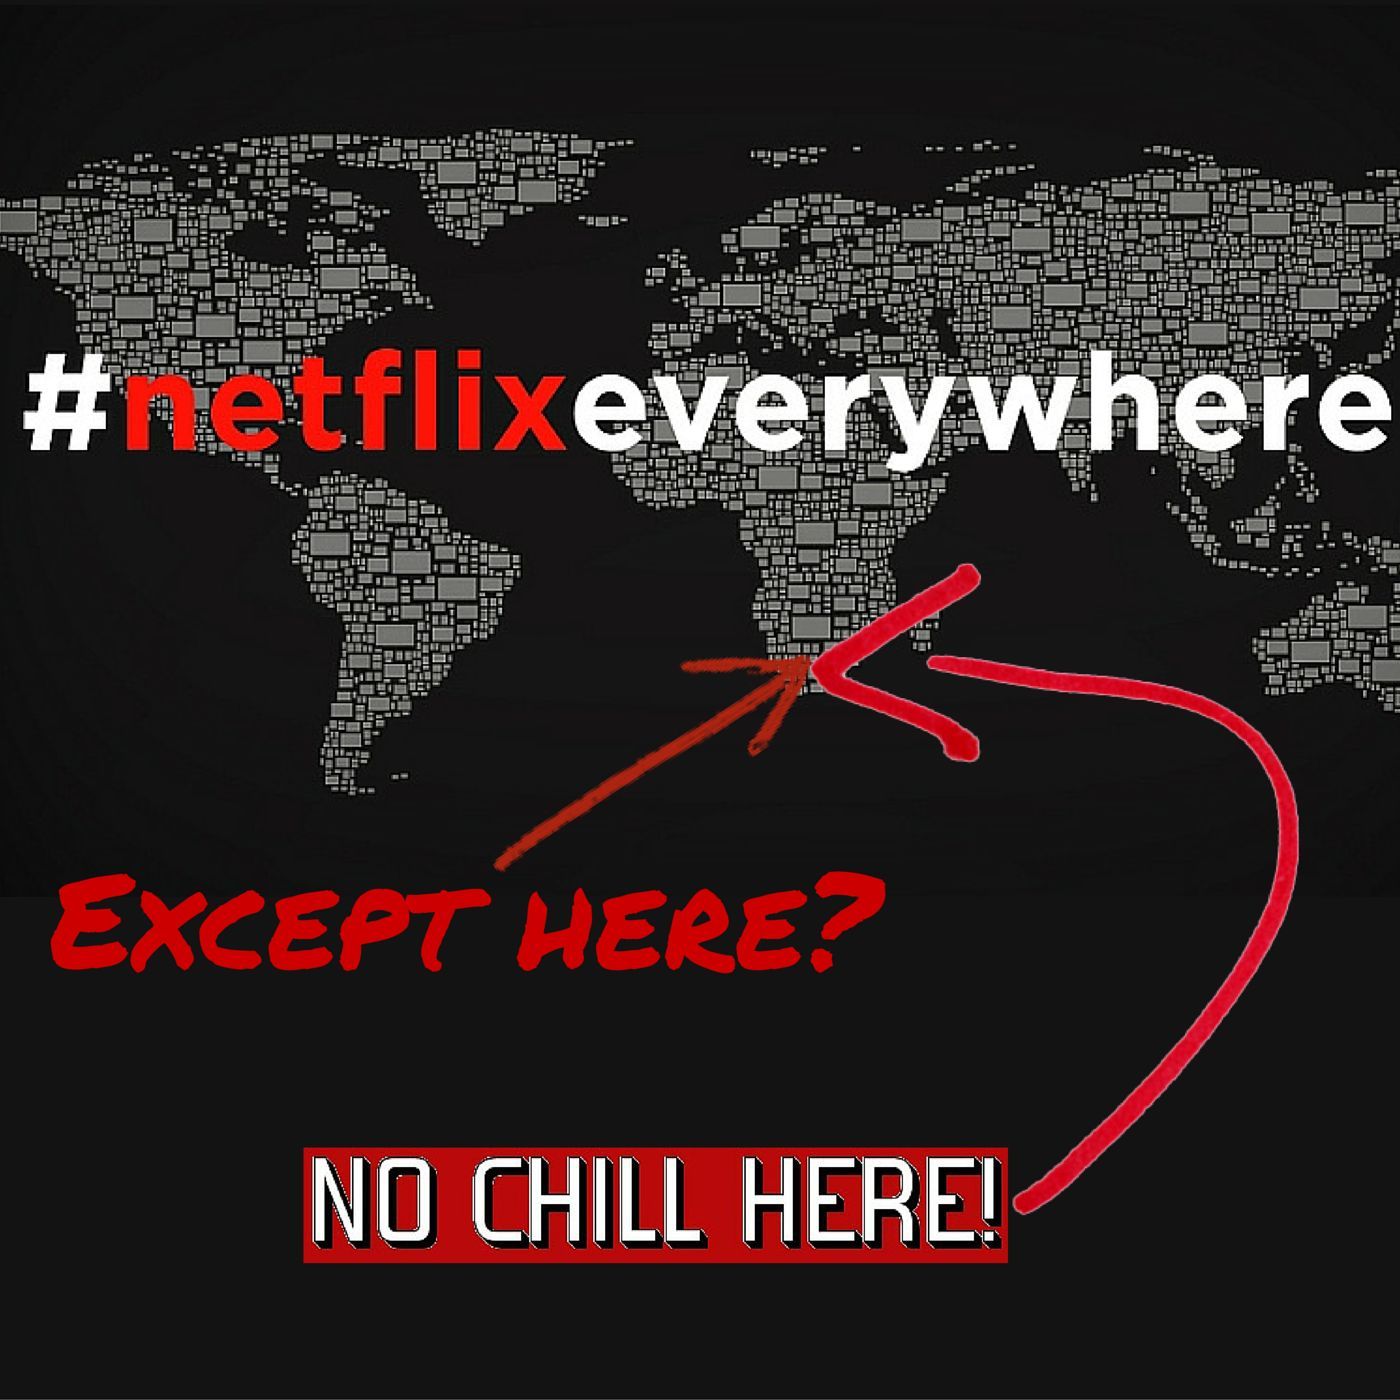 How Ridiculous Is This? South Africa Is Looking To Ban Netflix!